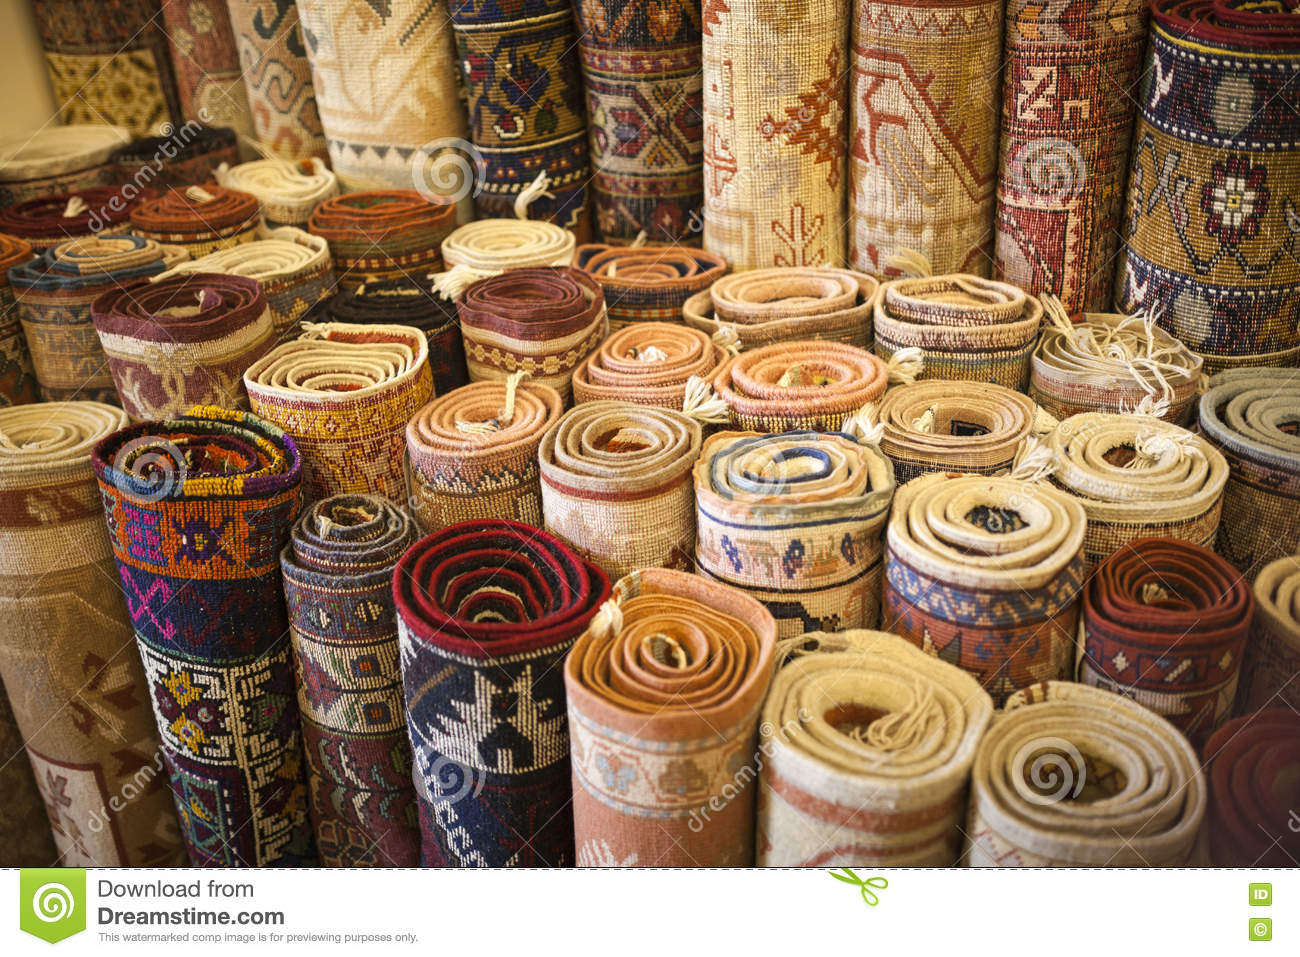 Magasin turc de tapis photo stock image 73862578 - Tapis de sol magasin but ...